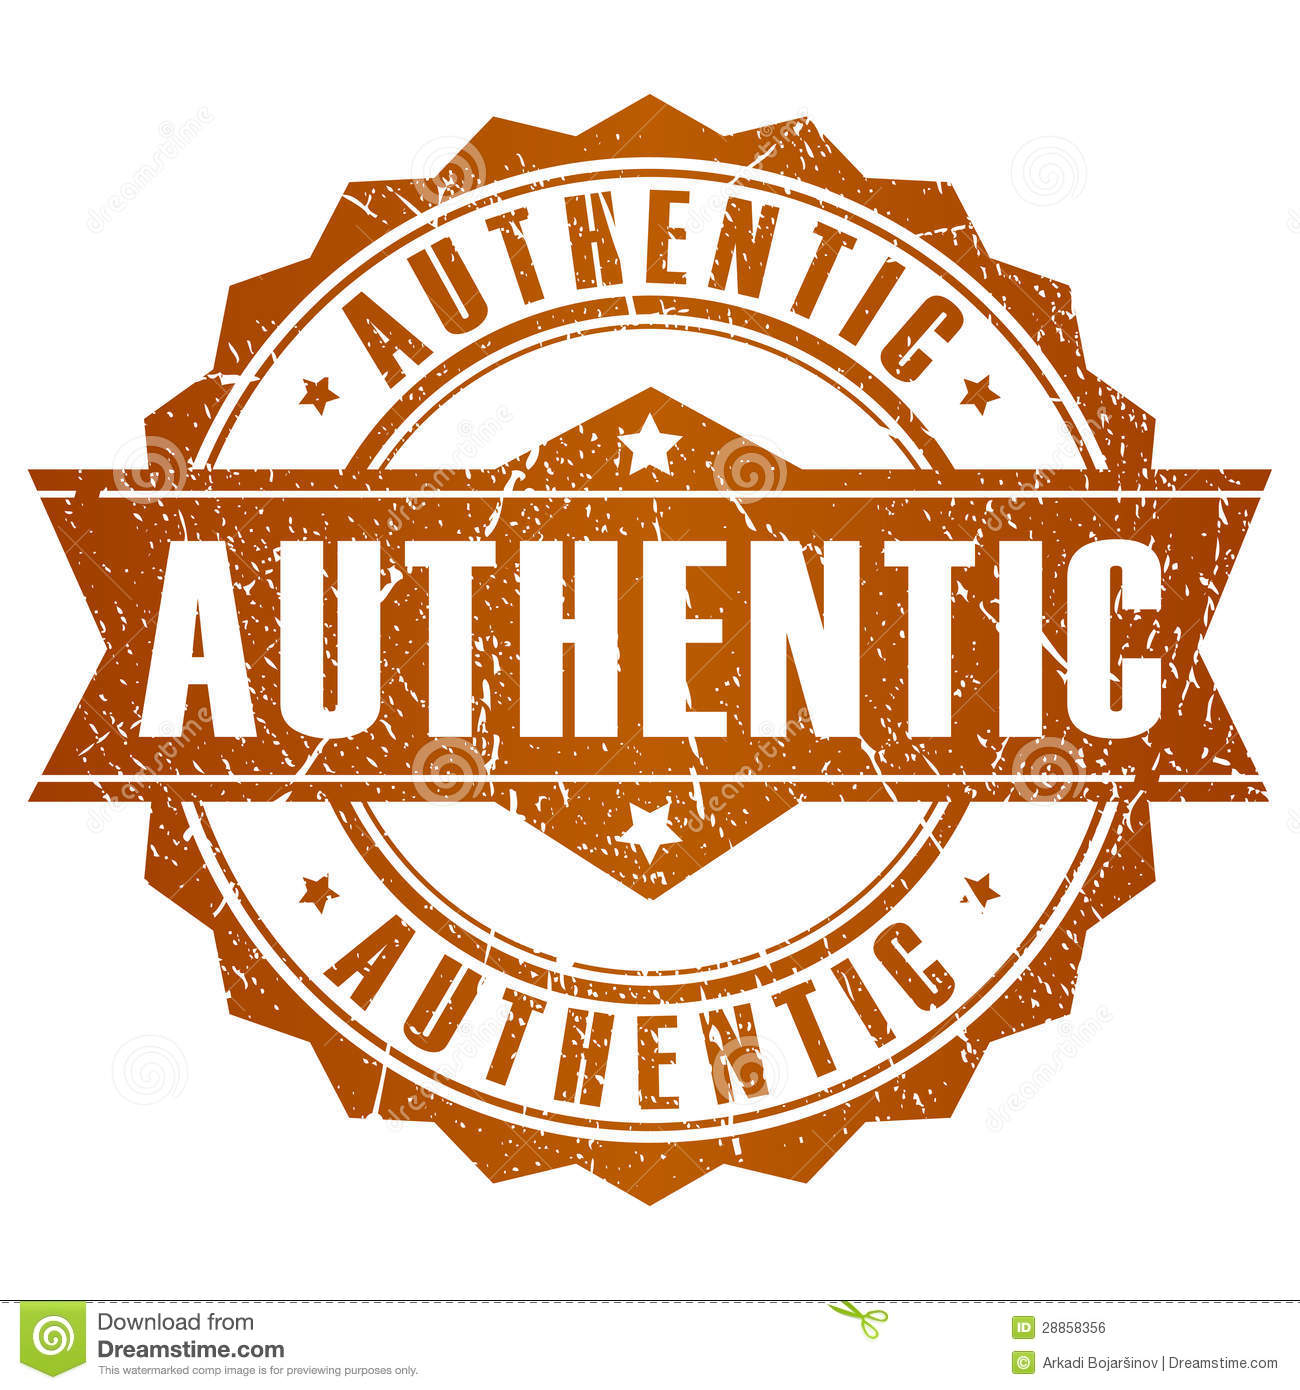 Authentic Vector Stamp Royalty Free Stock Image - Image